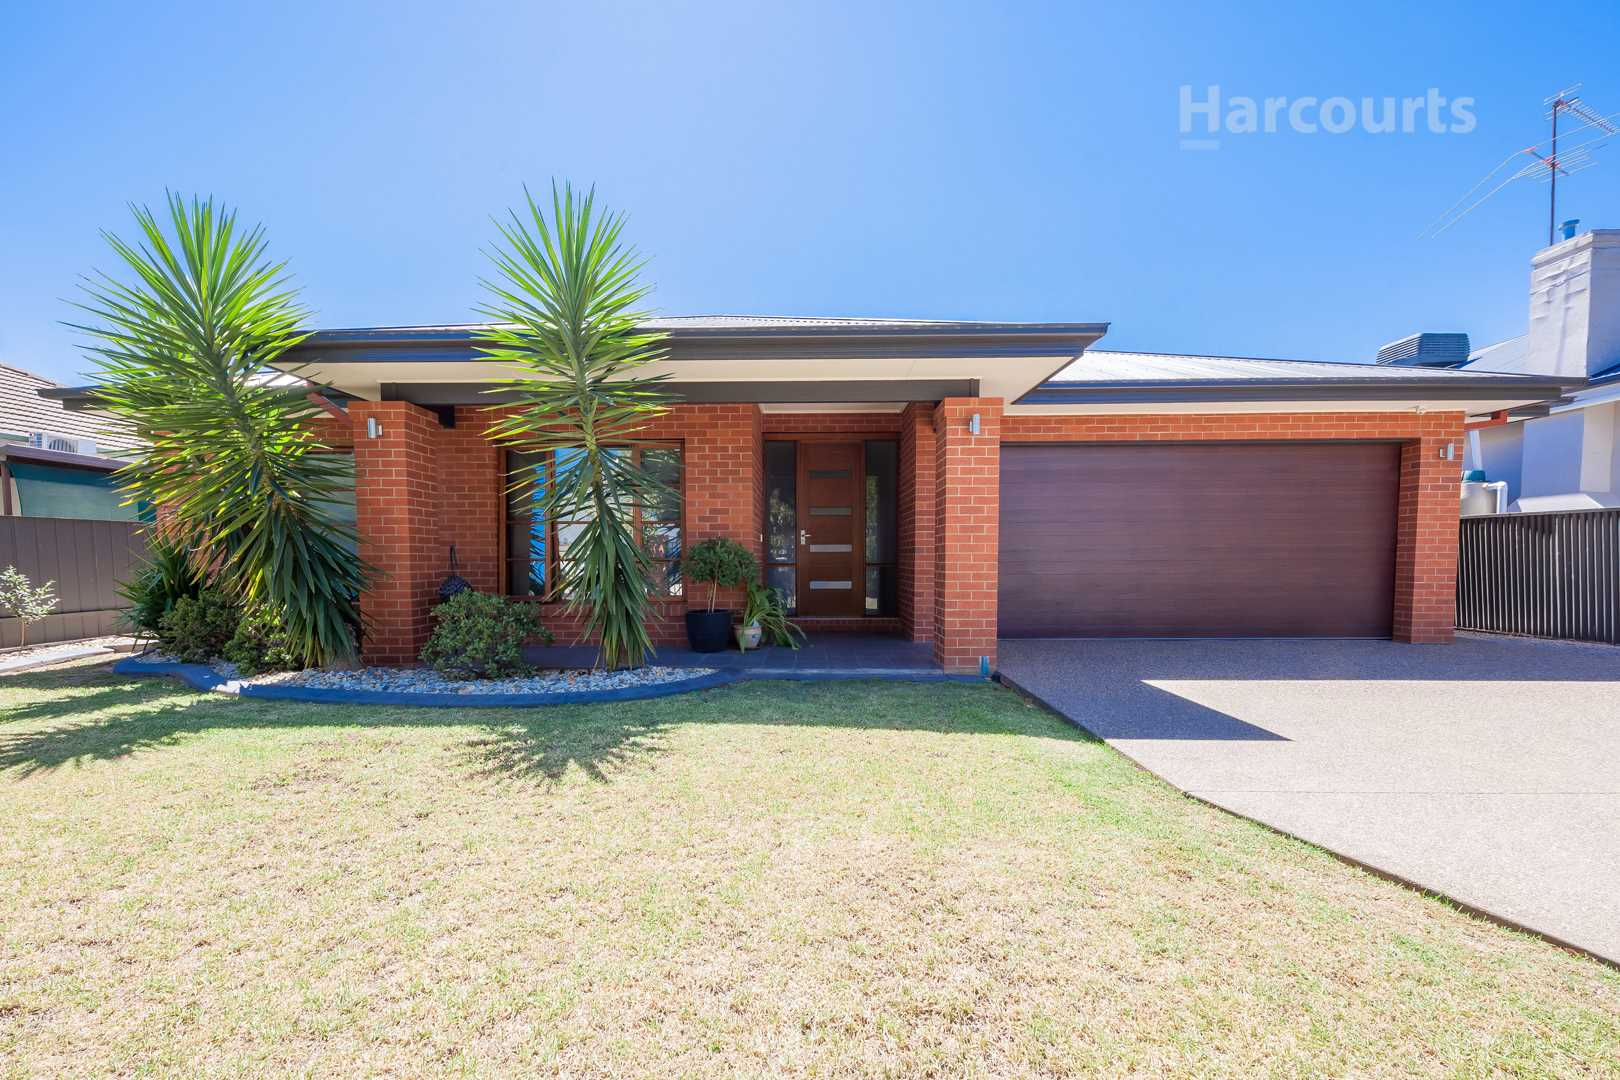 Classic Steane with new spacious home quality - 750m2